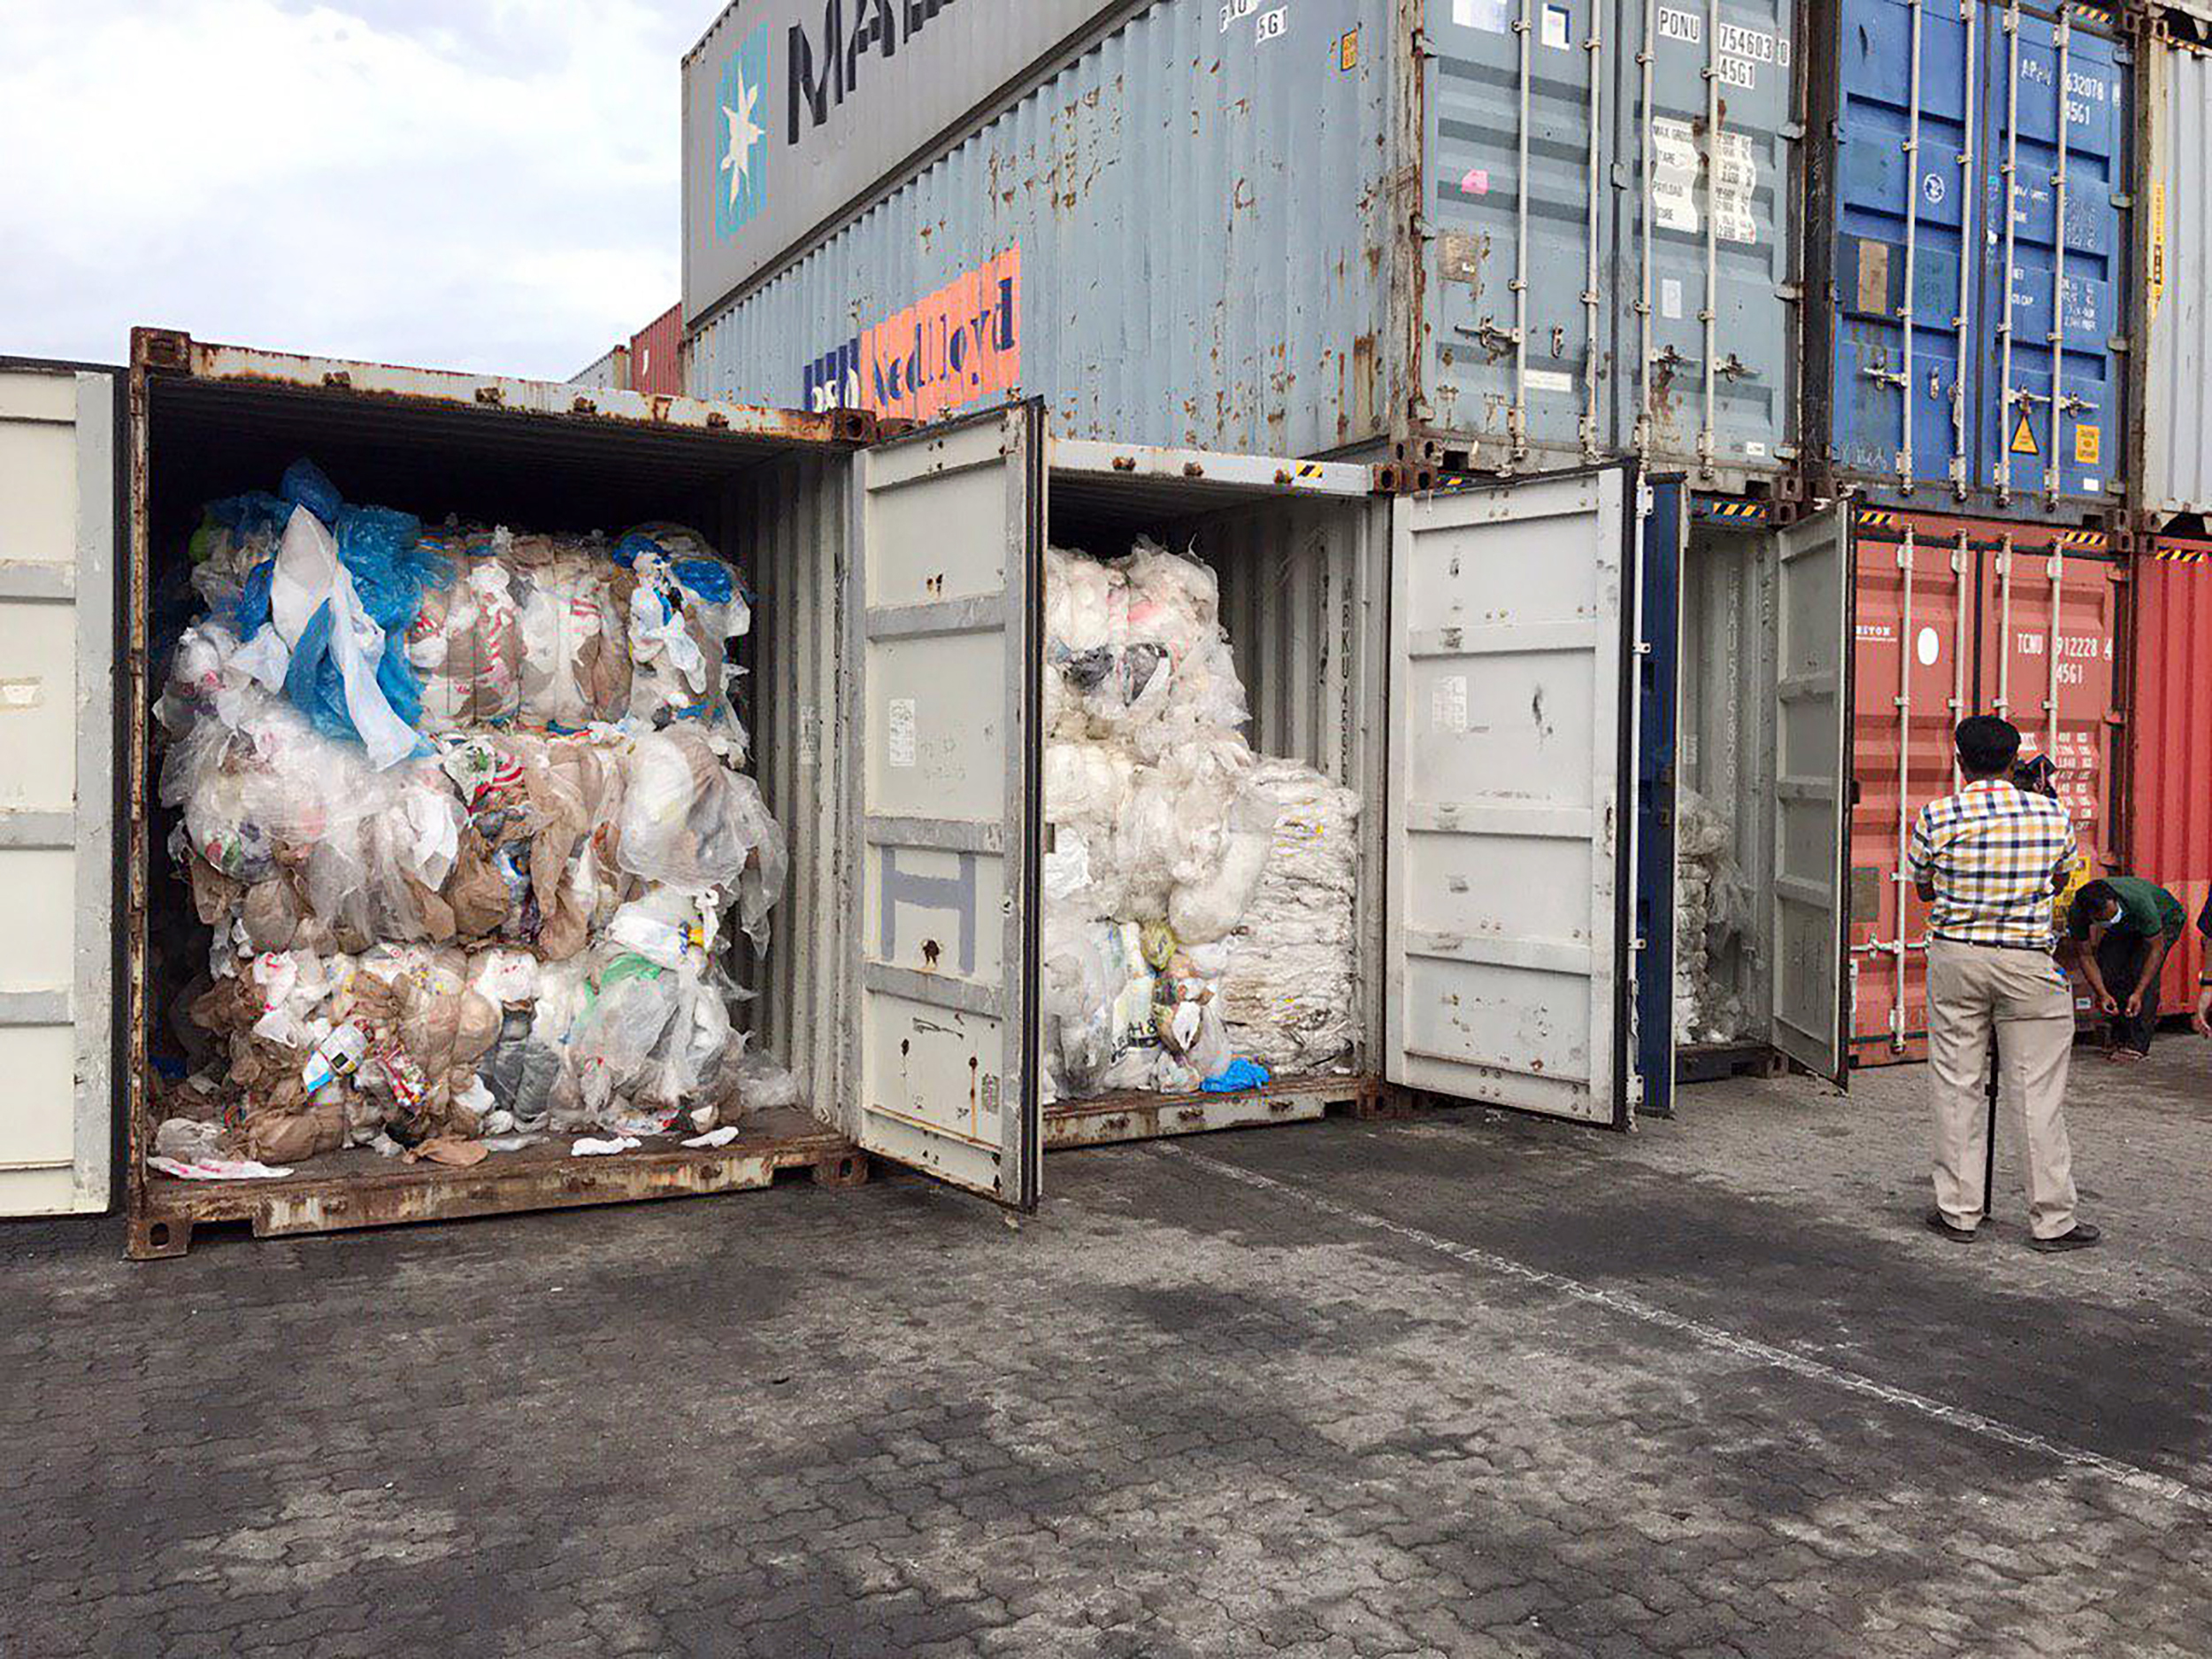 Containers loaded with plastic waste are placed at country beach city, Sihanoukville Port, southwest of Phnom Penh, Cambodia on July 16, 2019.